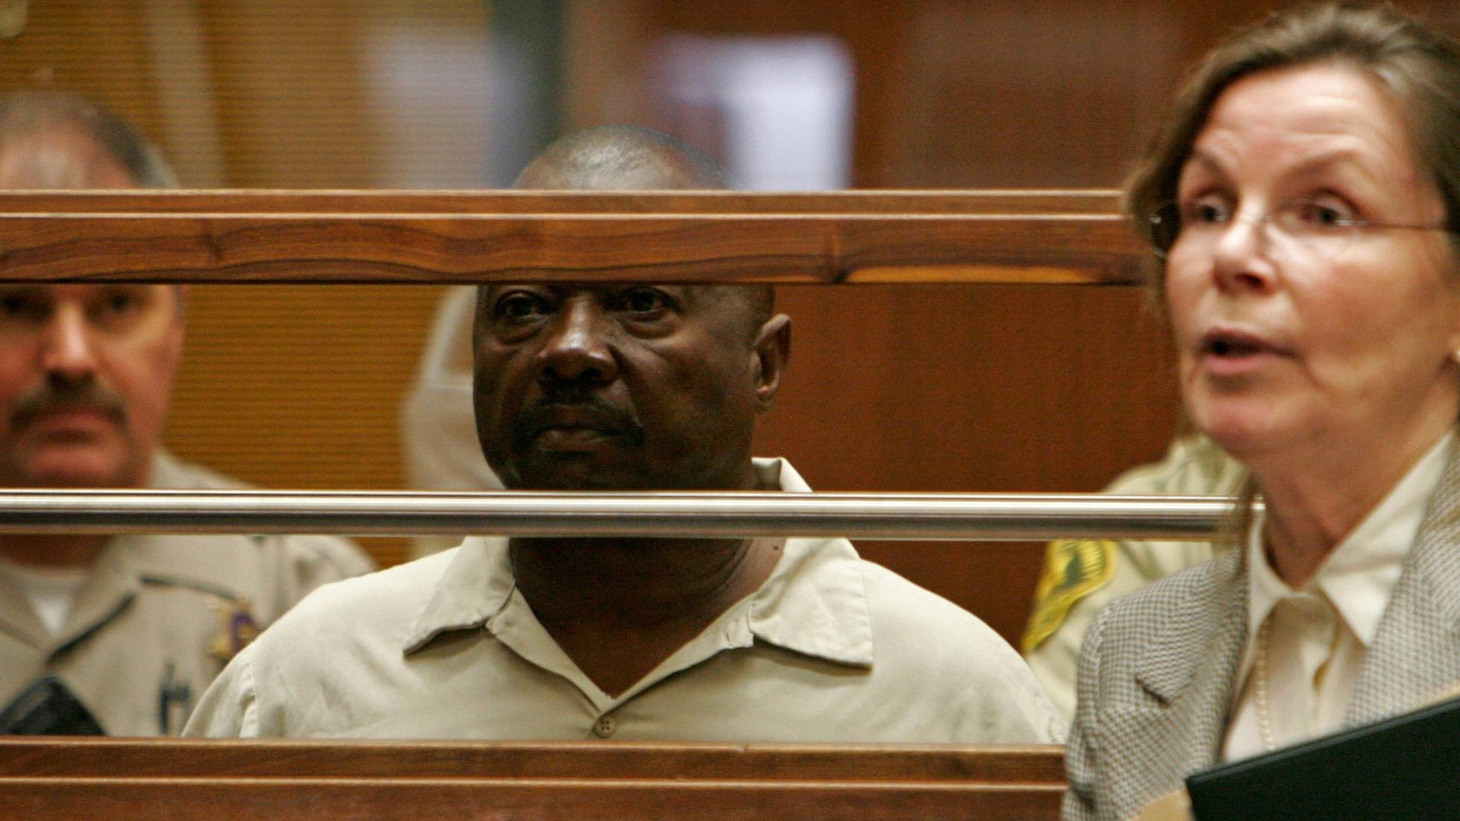 """Police in Los Angeles made an arrest in the 25-year-old serial murder case of the """"Grim Sleeper."""" The breakthrough came as the result of a search that's commonly called """"familial"""" DNA, a controversial practice in tracking down criminals. What privacy issues does it raise, and how certain are the results? Also, the finance bill moves closer to passage as Obama's poll numbers decline, and a look back at the life of one of baseball's larger-than-life managers. Sara Terry sits in for vacationing Warren Olney."""